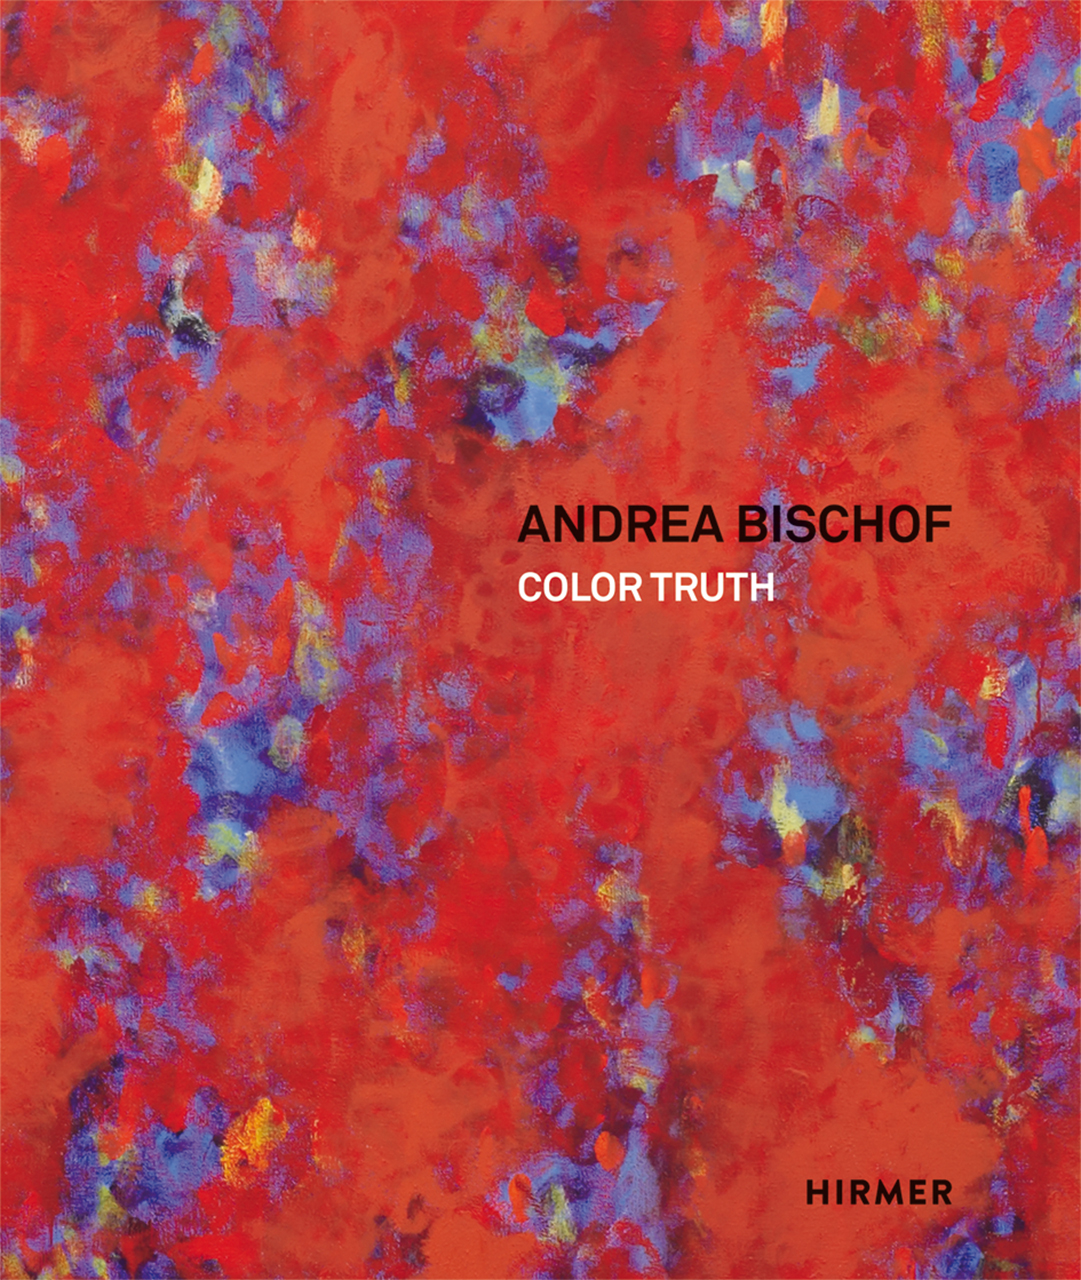 Andrea Bischof: Color Truth